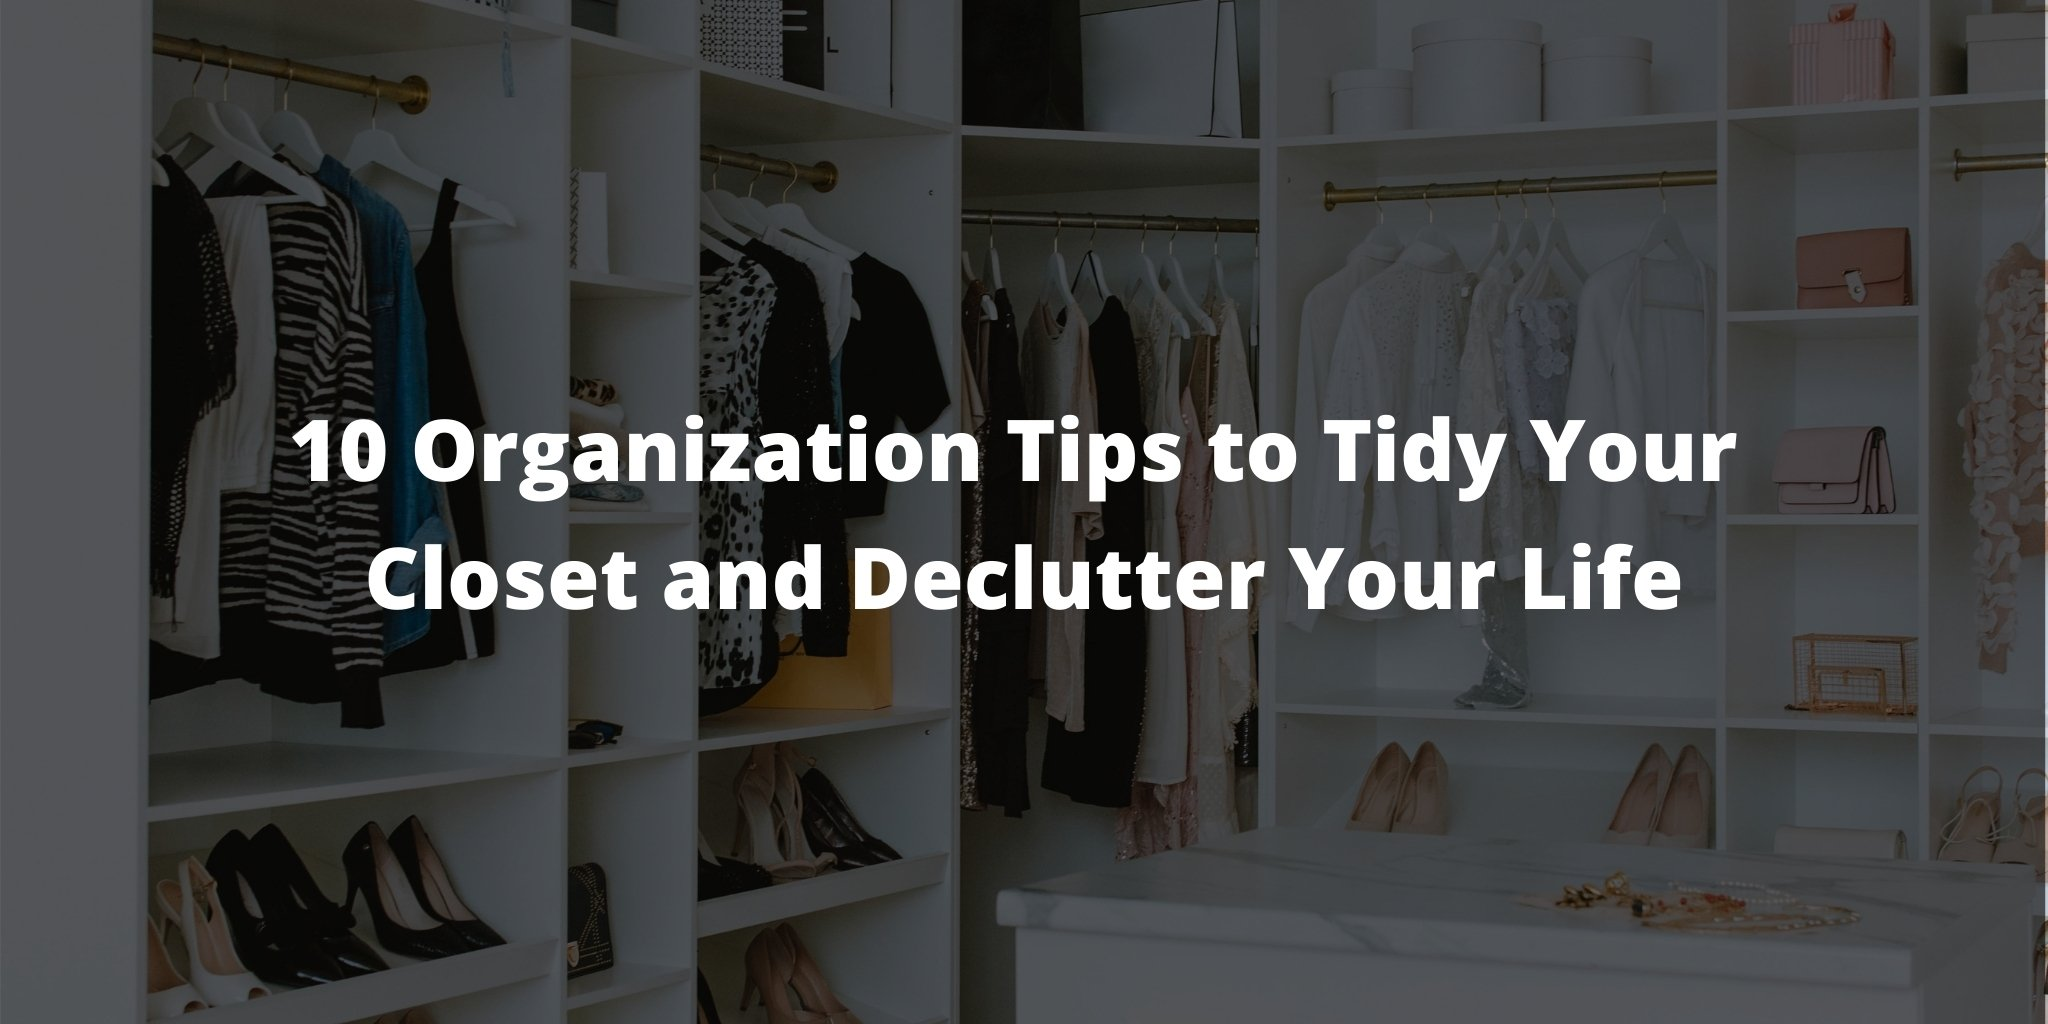 These 10 Easy Tips Will Help Tidy Your Closet and Declutter Your Life